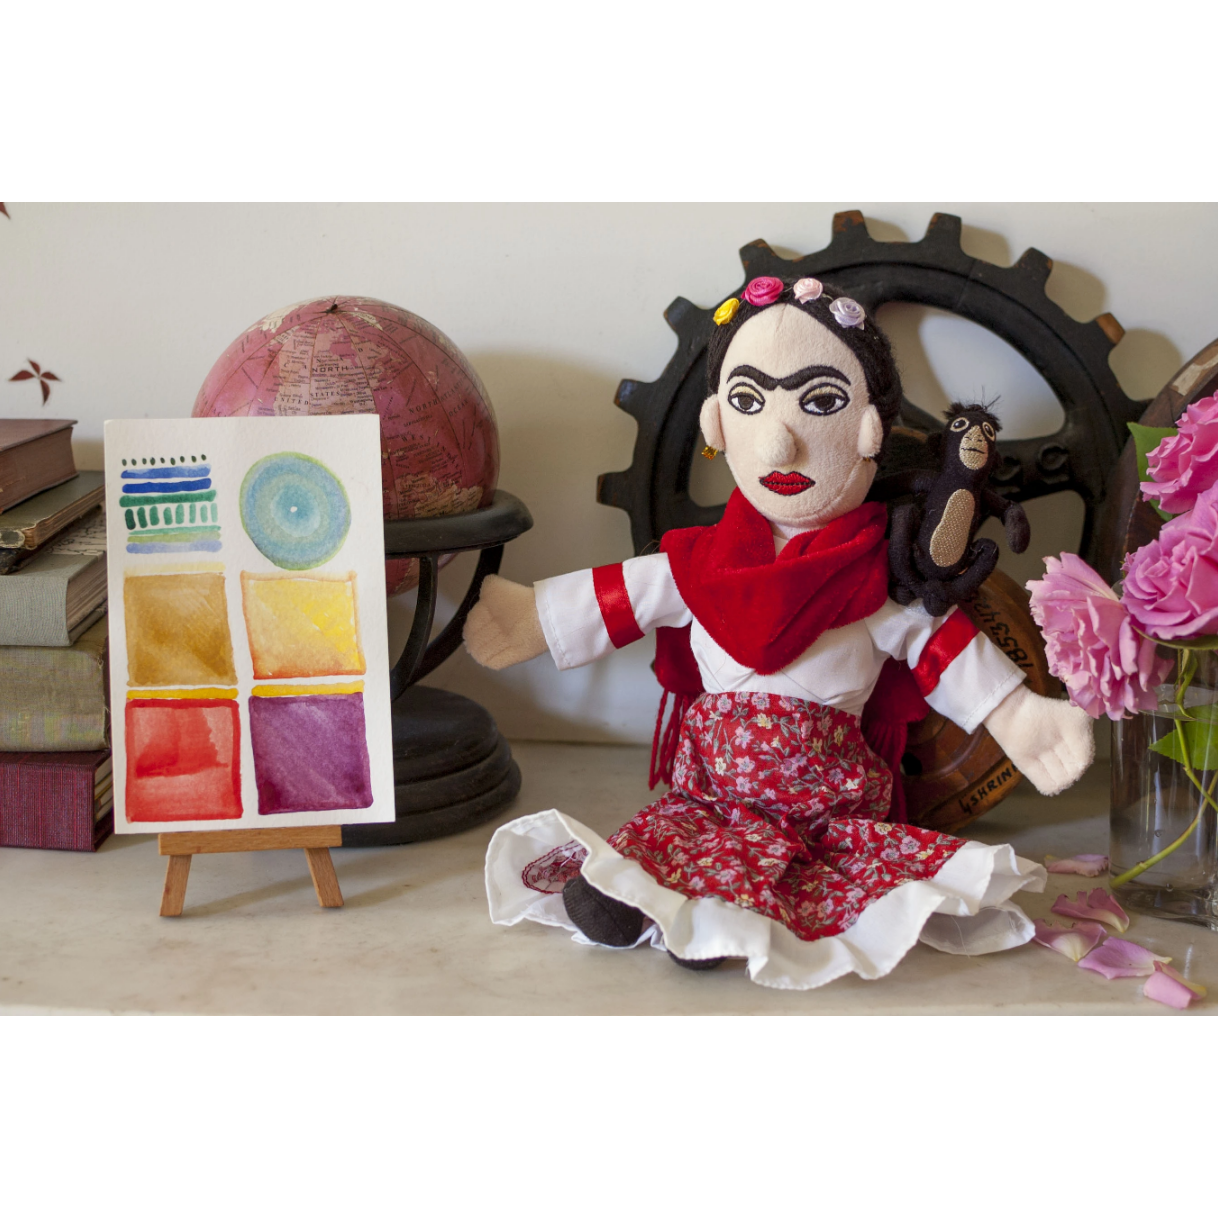 Little Thinkers Frida Doll - Boyar Gifts NYC